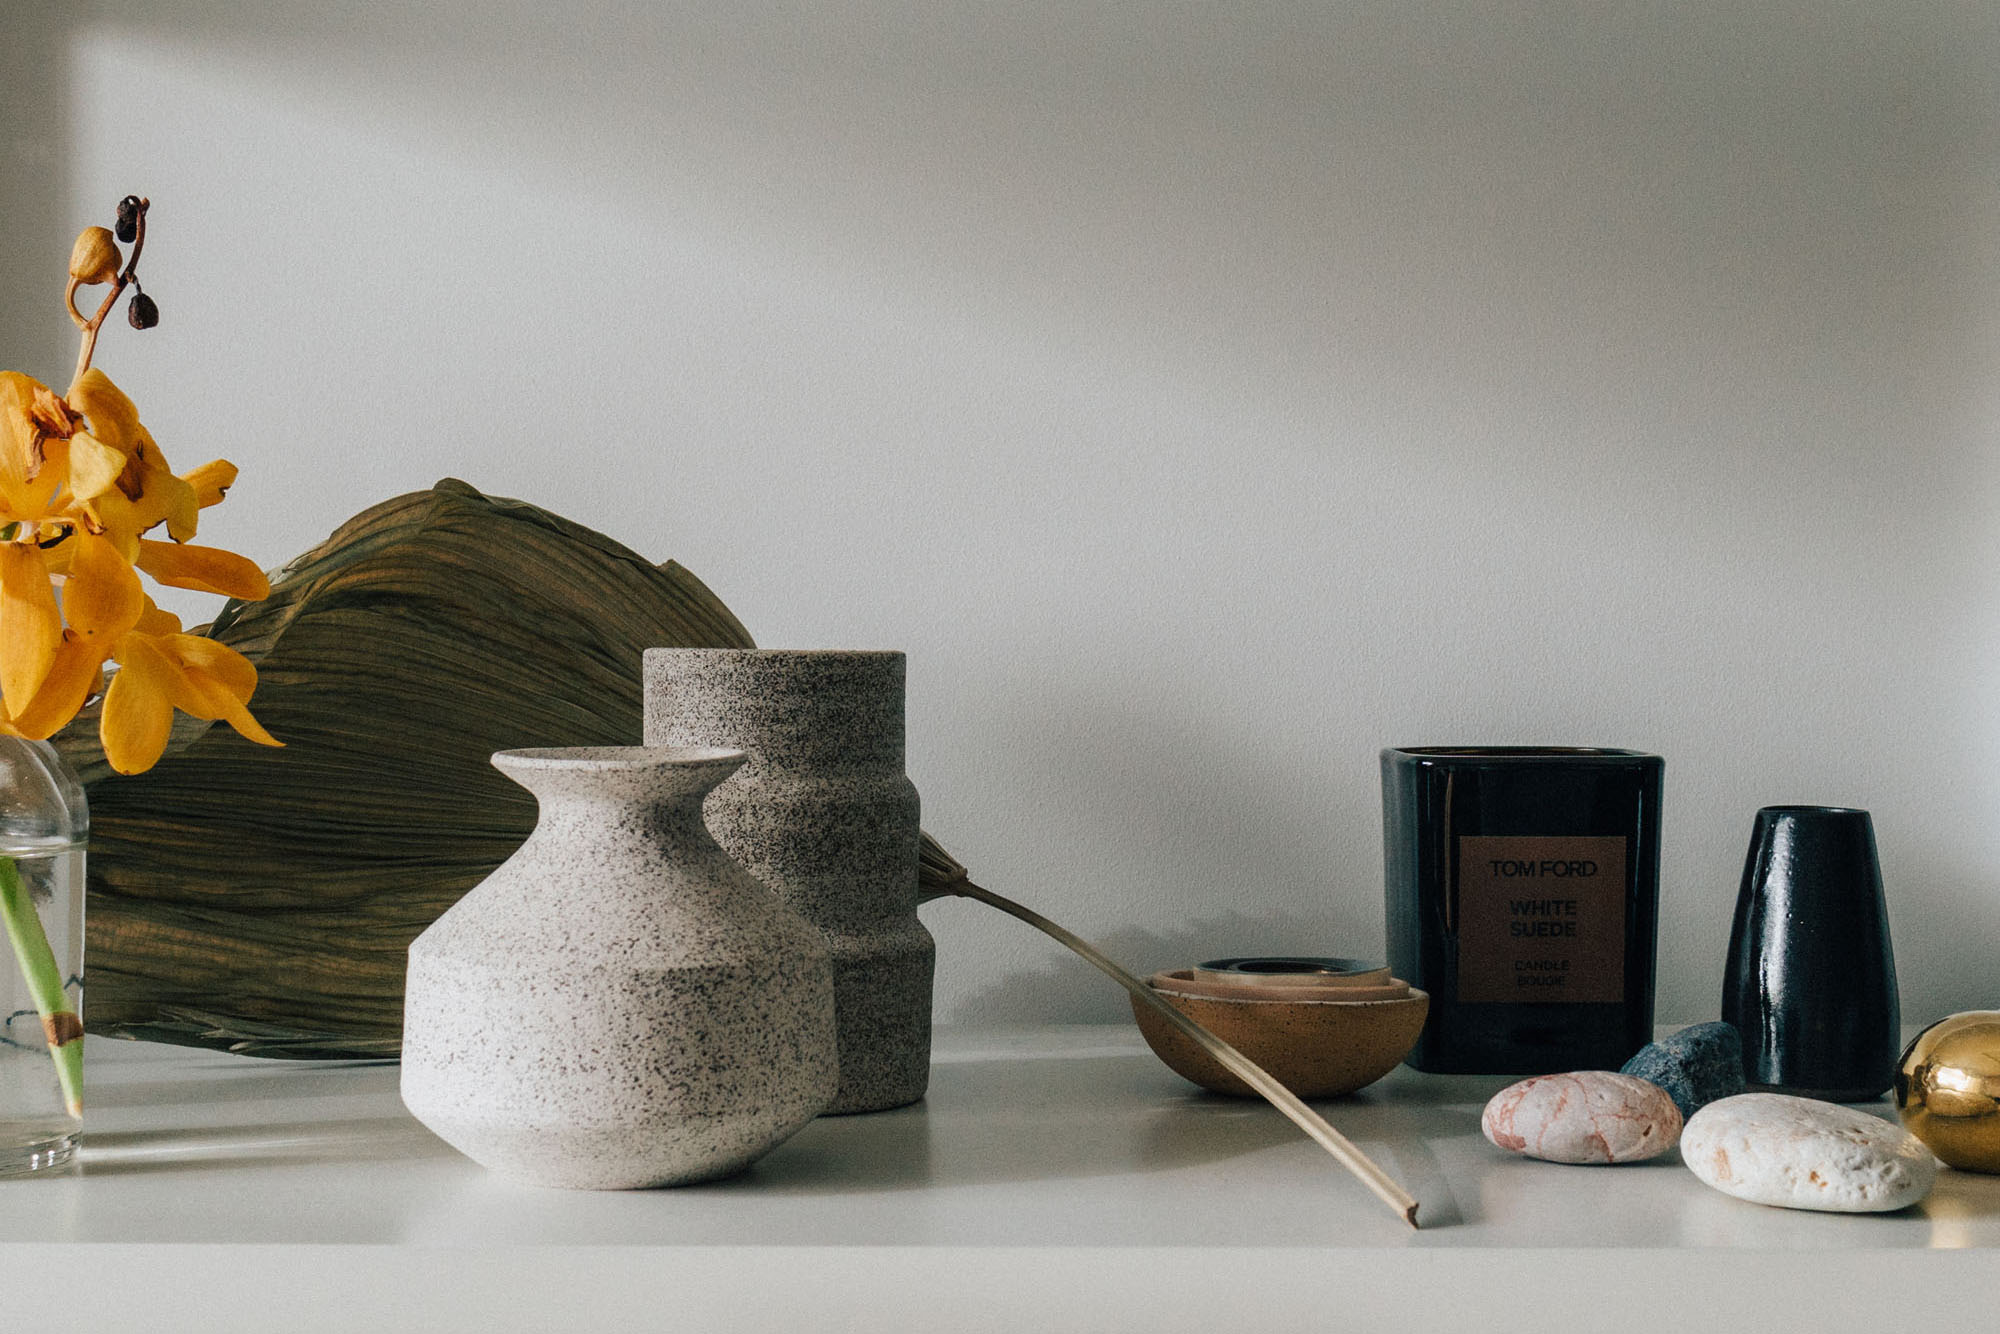 Natalie Weinberger Vases ,  Tom Ford Candle ,  Milk and Clay Vase